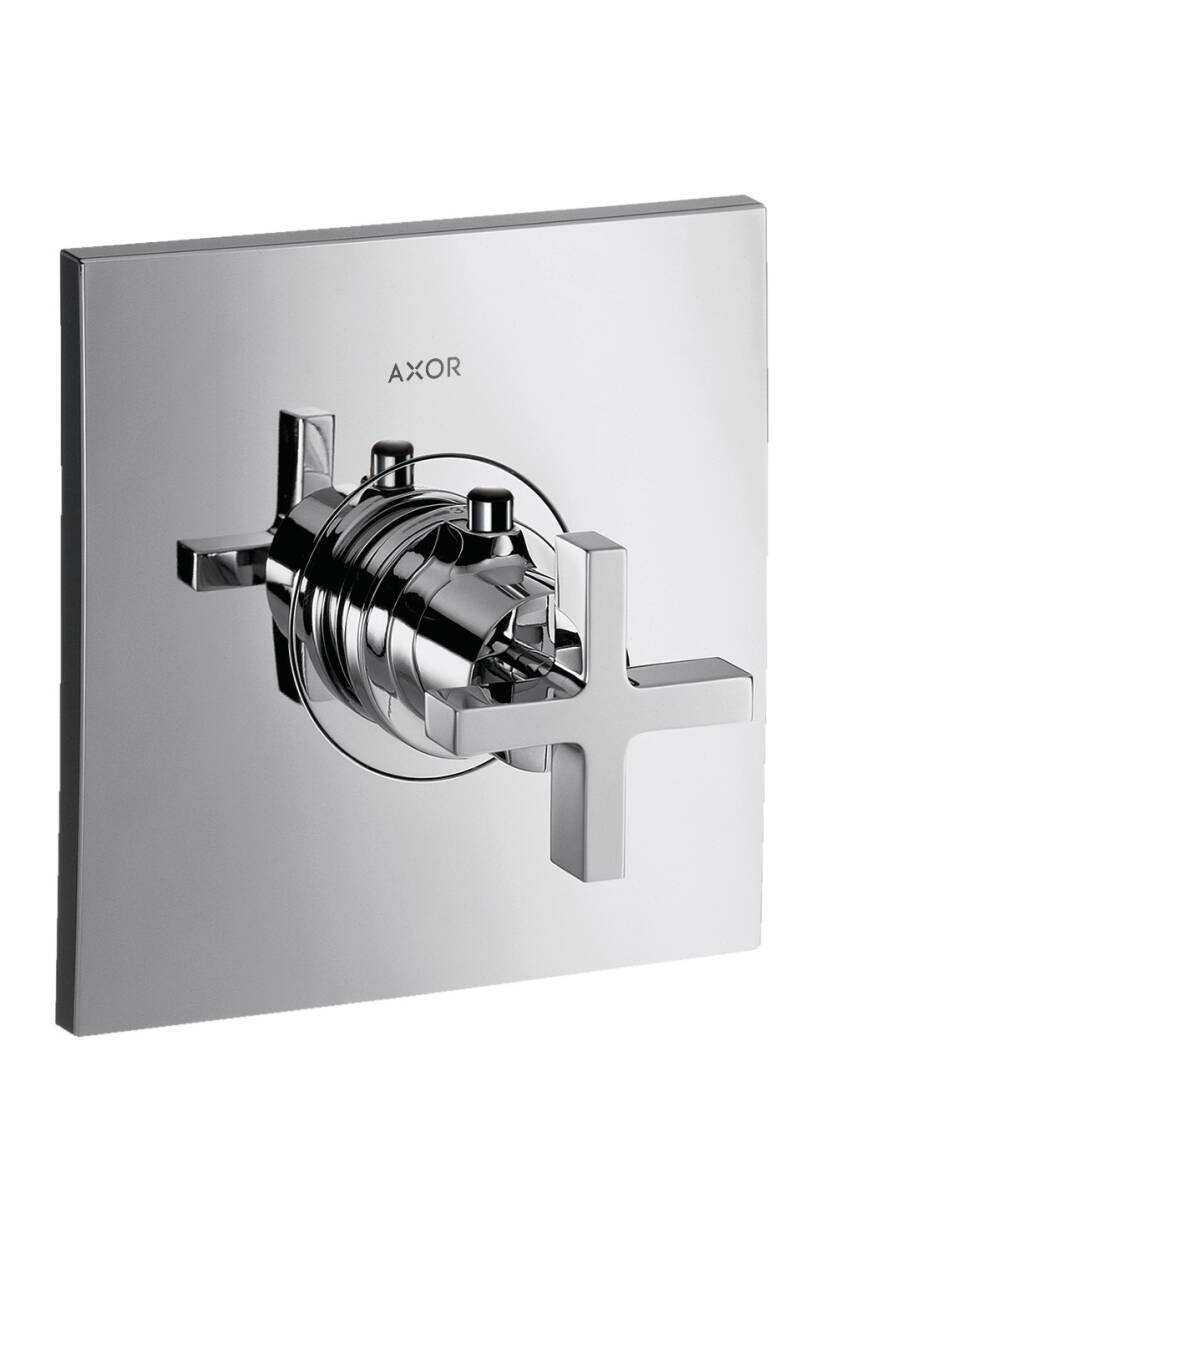 Thermostat HighFlow for concealed installation with cross handle, Chrome, 39716000